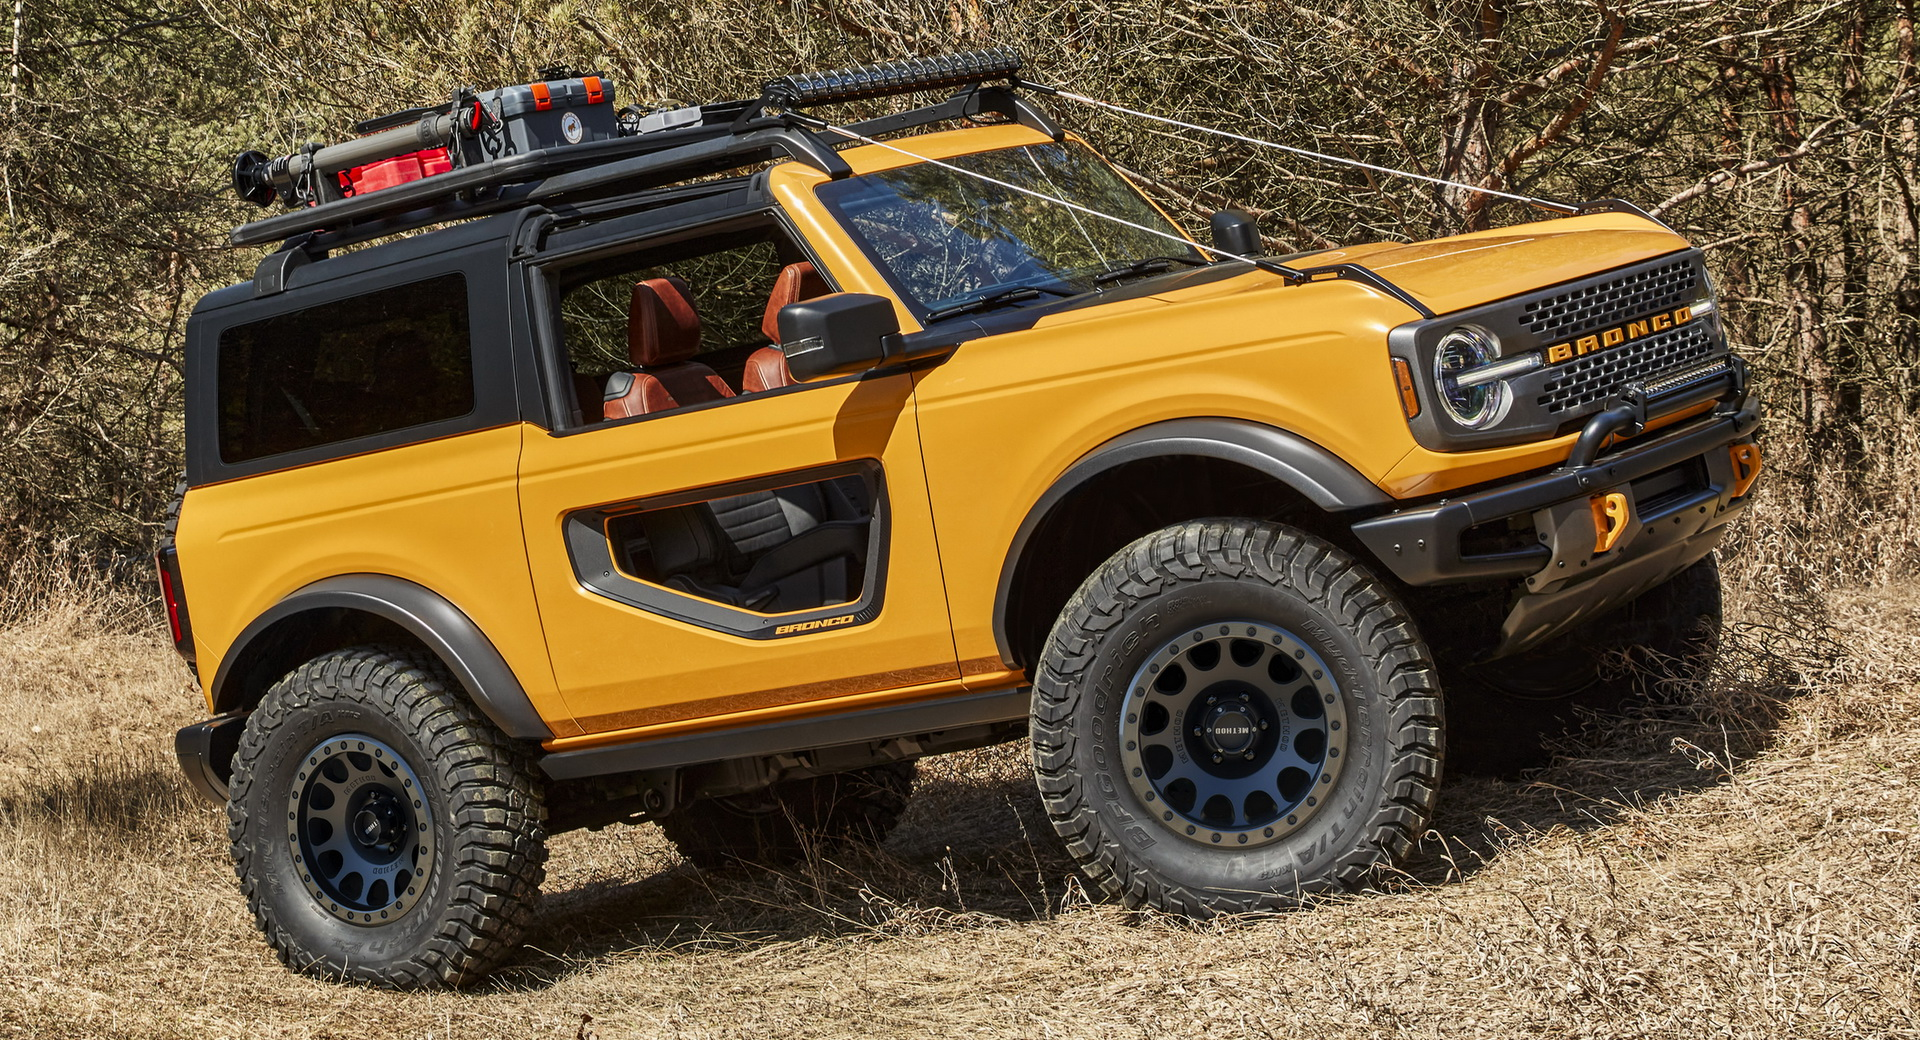 2021 ford bronco: sasquatch off-road package can't be